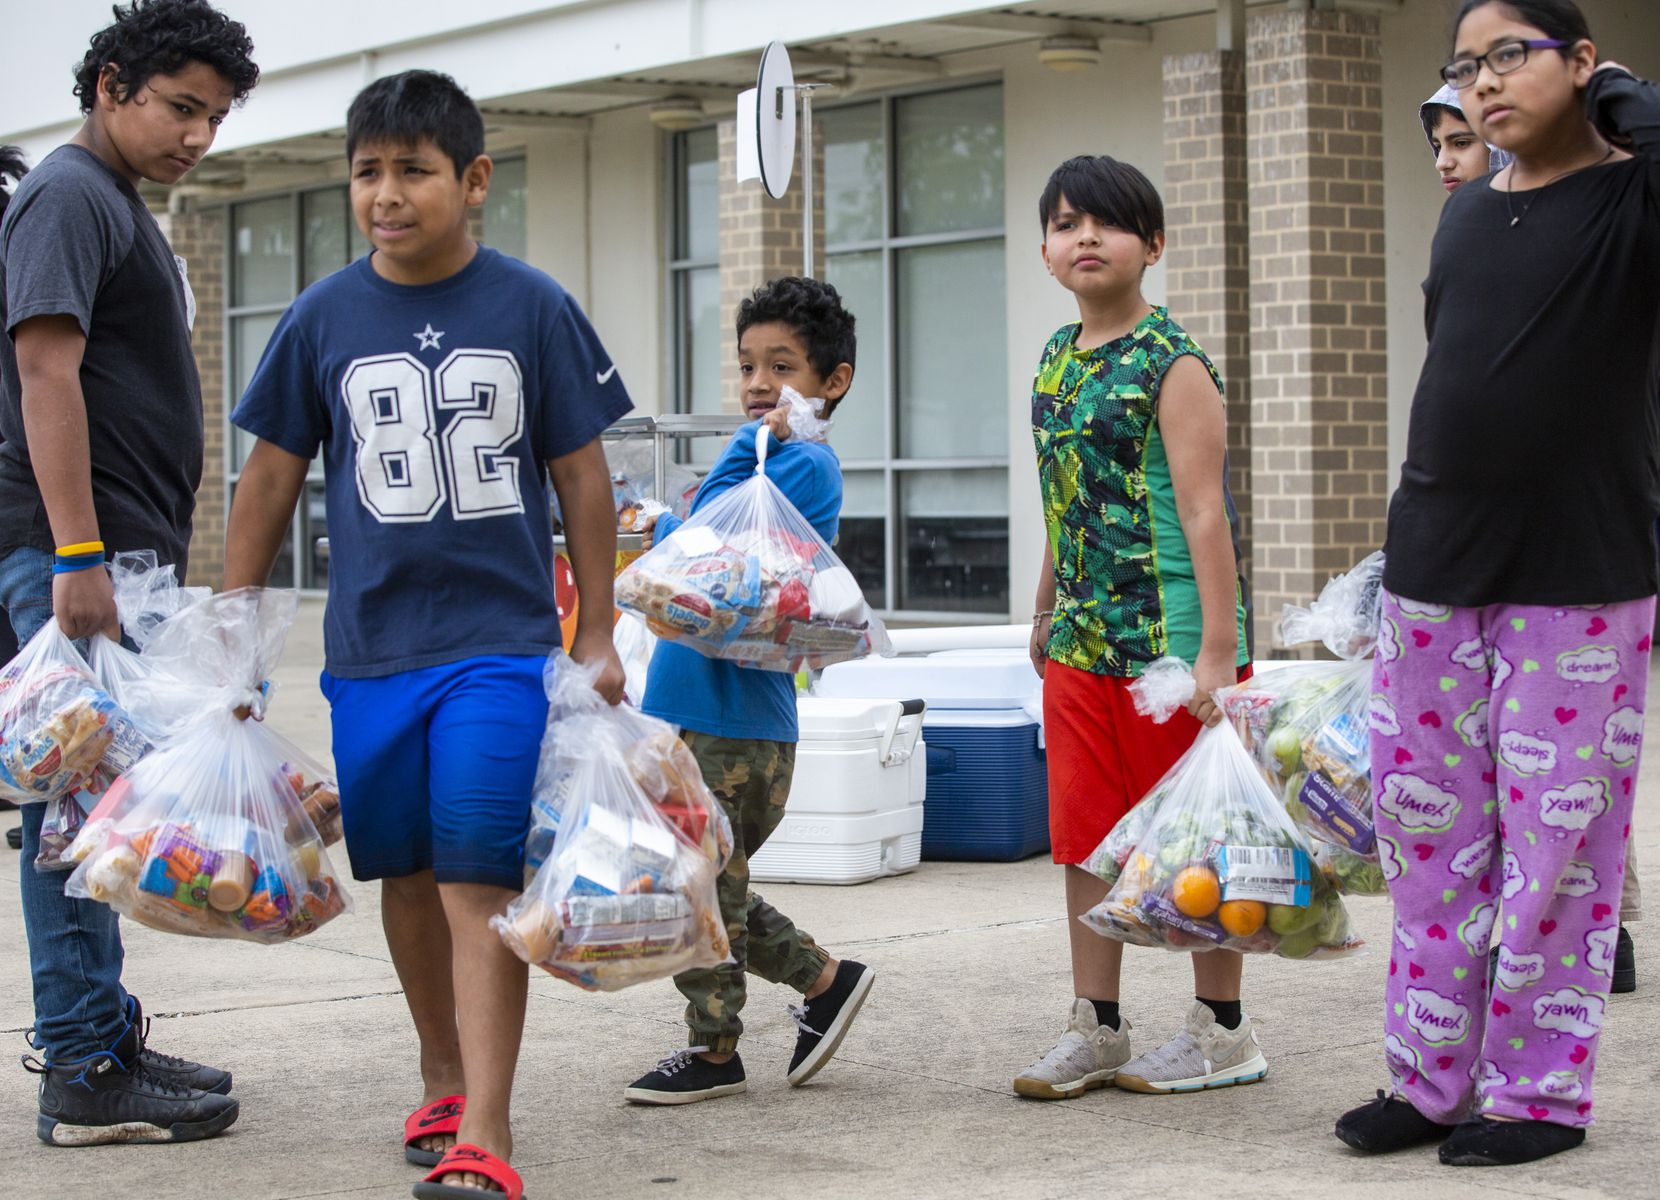 Siblings (from left) Anthony Sanchez, 13, Isaiah Sanchez, 12, Joseph Avaral, 7, Adrian Saldana, 9, and Crystal Sanchez, 14, received  meals at Medrano on Thursday.